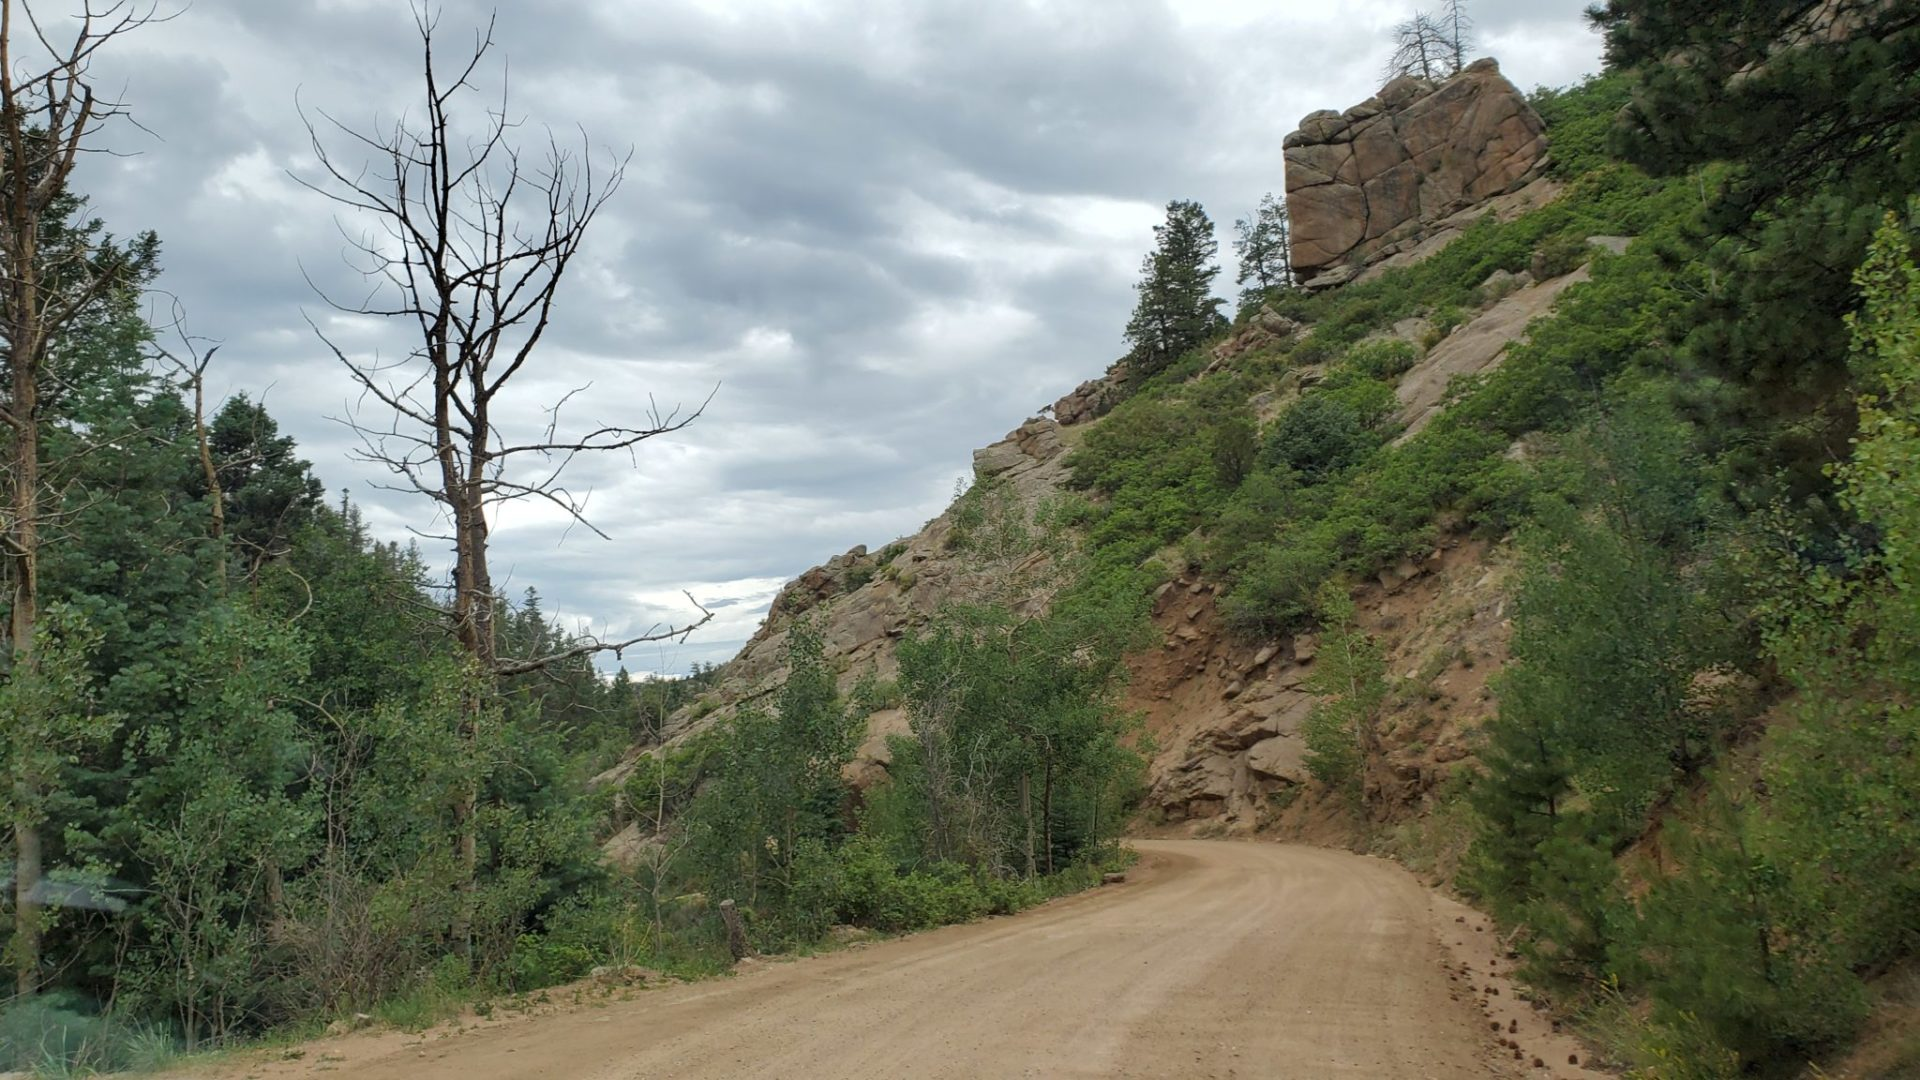 Approximately 23 miles from Cripple Creek to Canon City